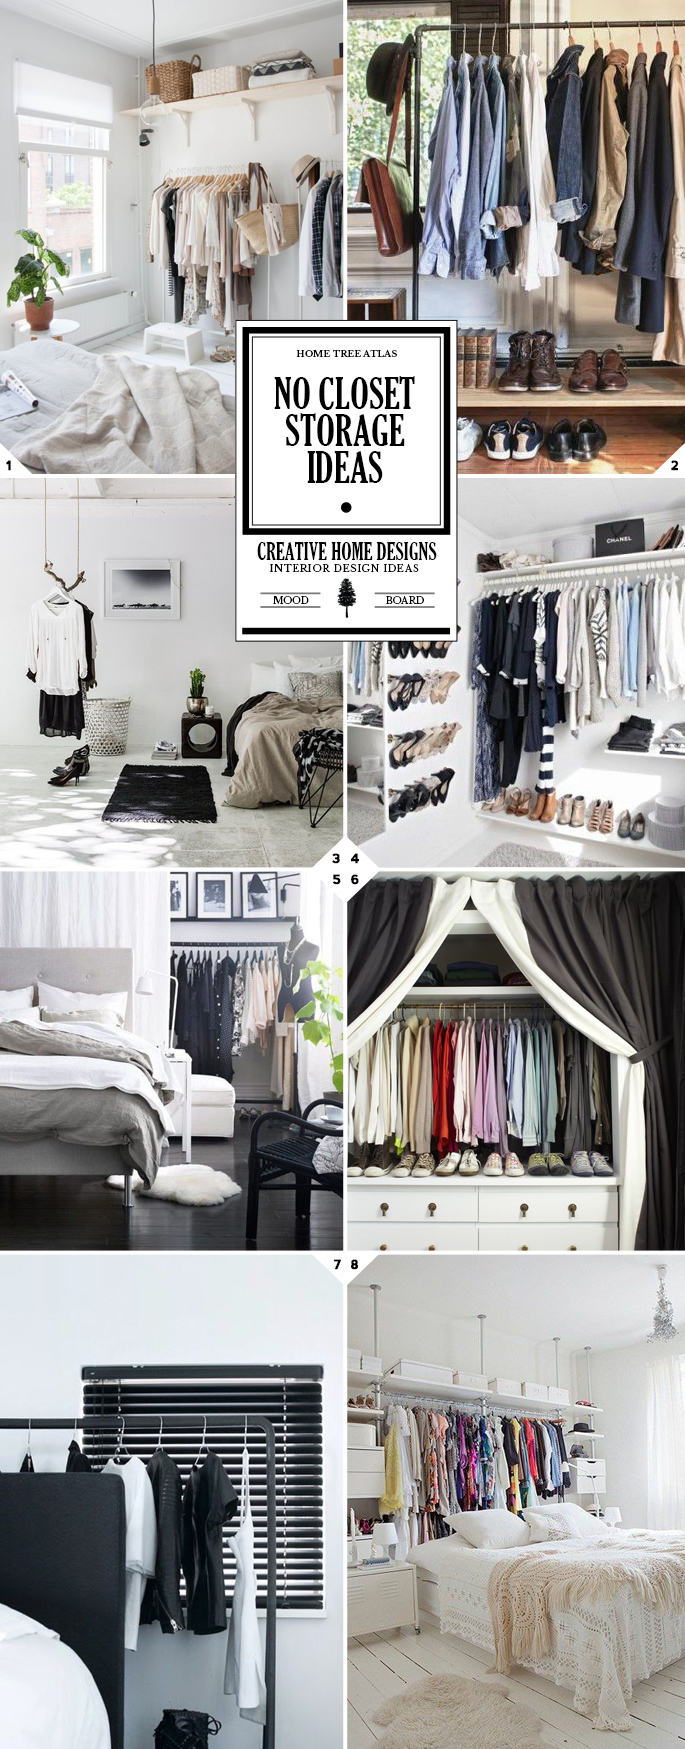 Getting Creative: No Closet Solutions and Storage Ideas | Home Tree ...